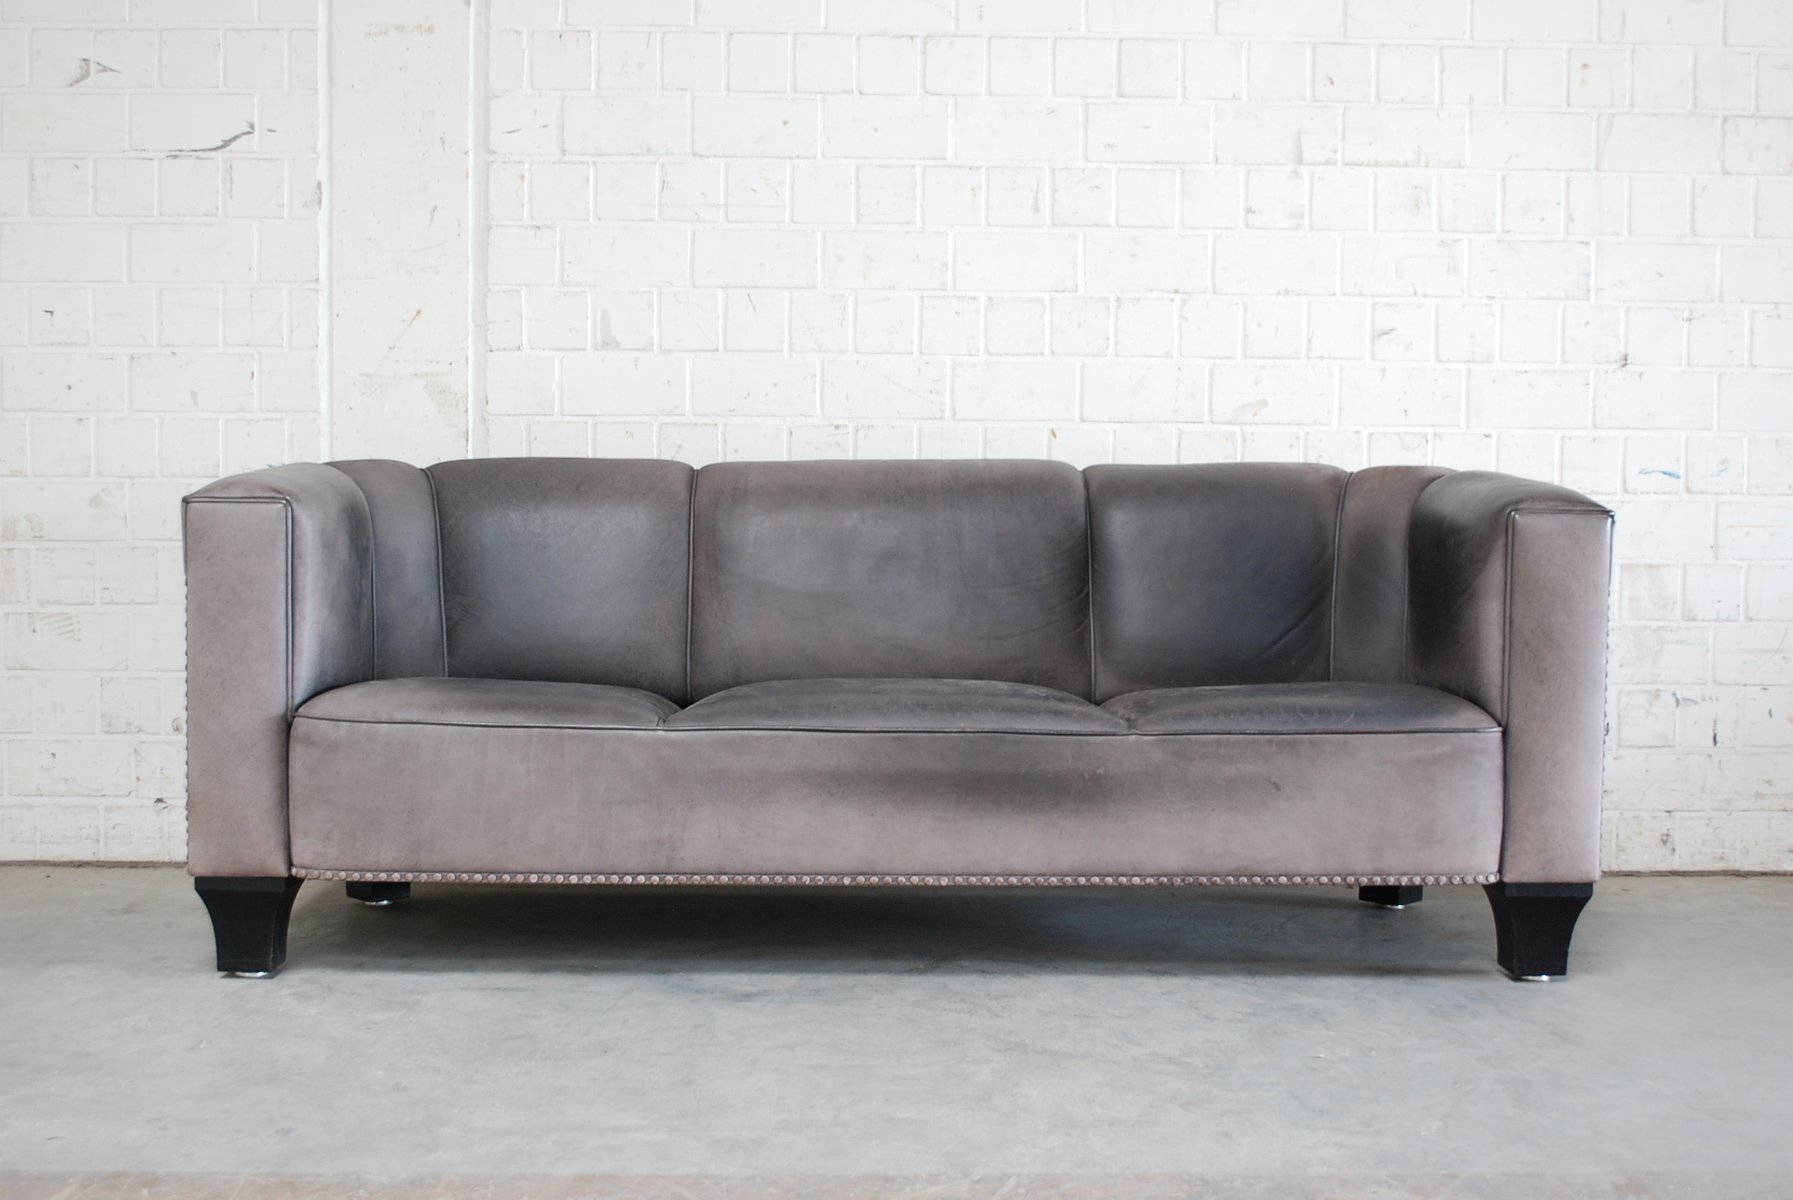 Vintage Palais Stoclet Leather Sofa By Josef Hoffmann For Wittmann 1980s